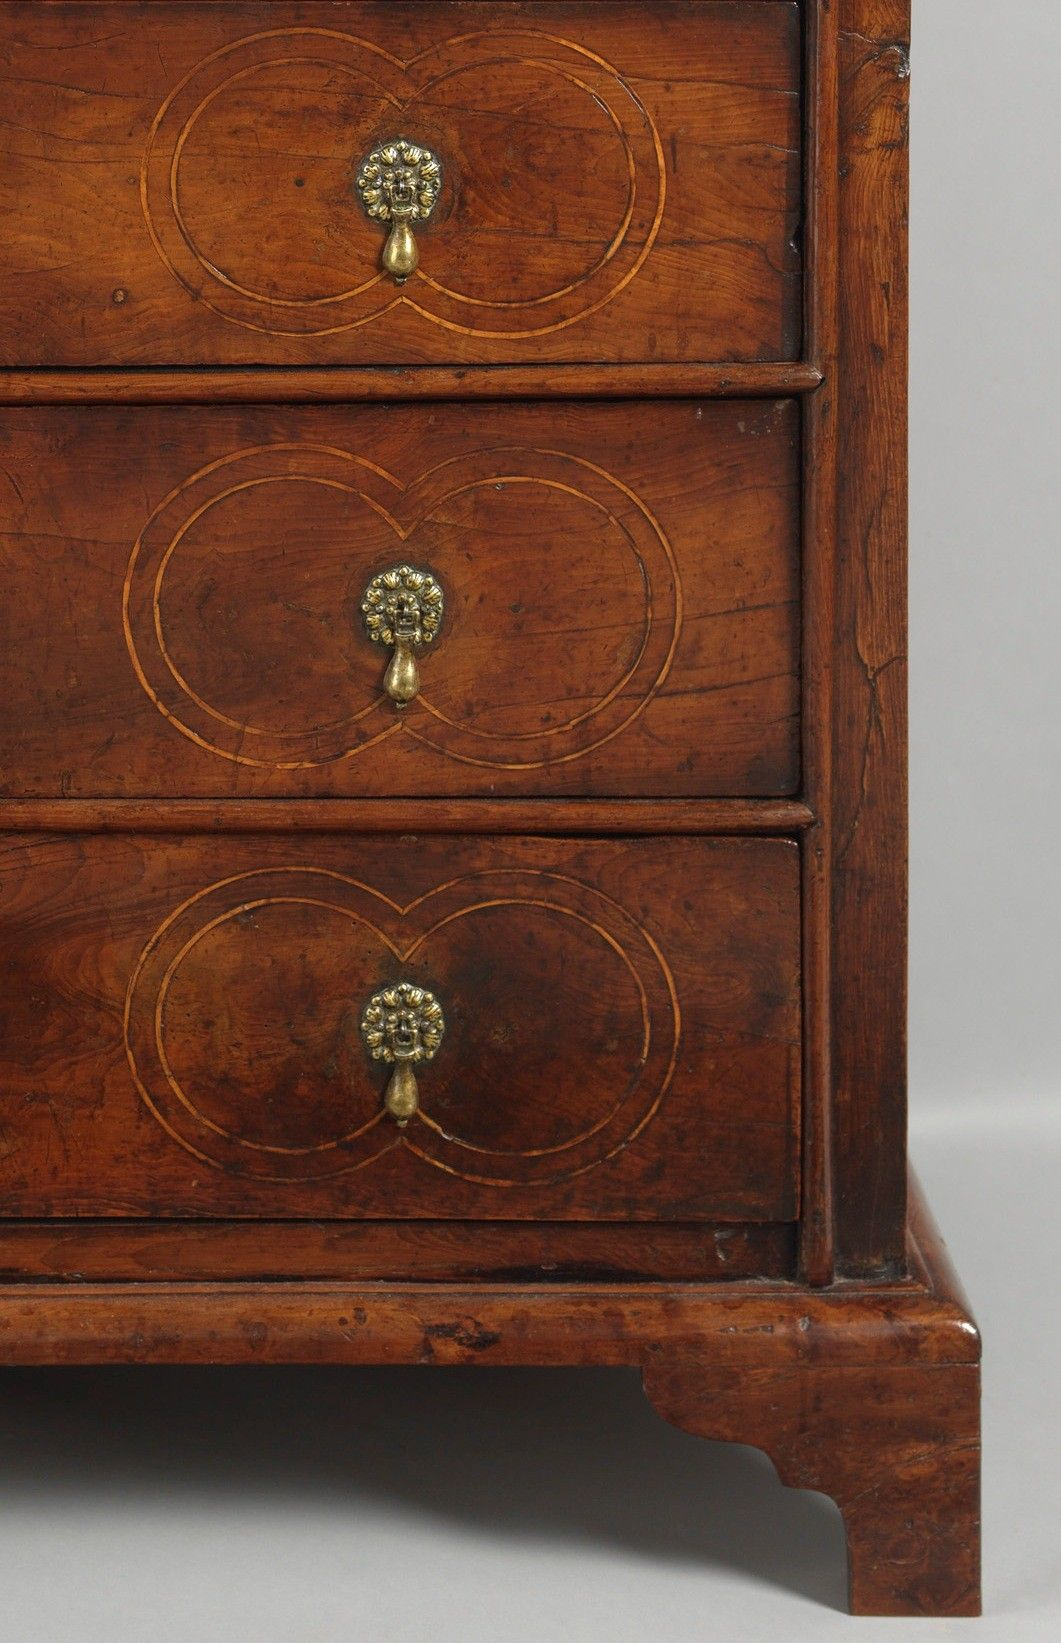 Delightful Small Queen Anne Period Chest of Drawers